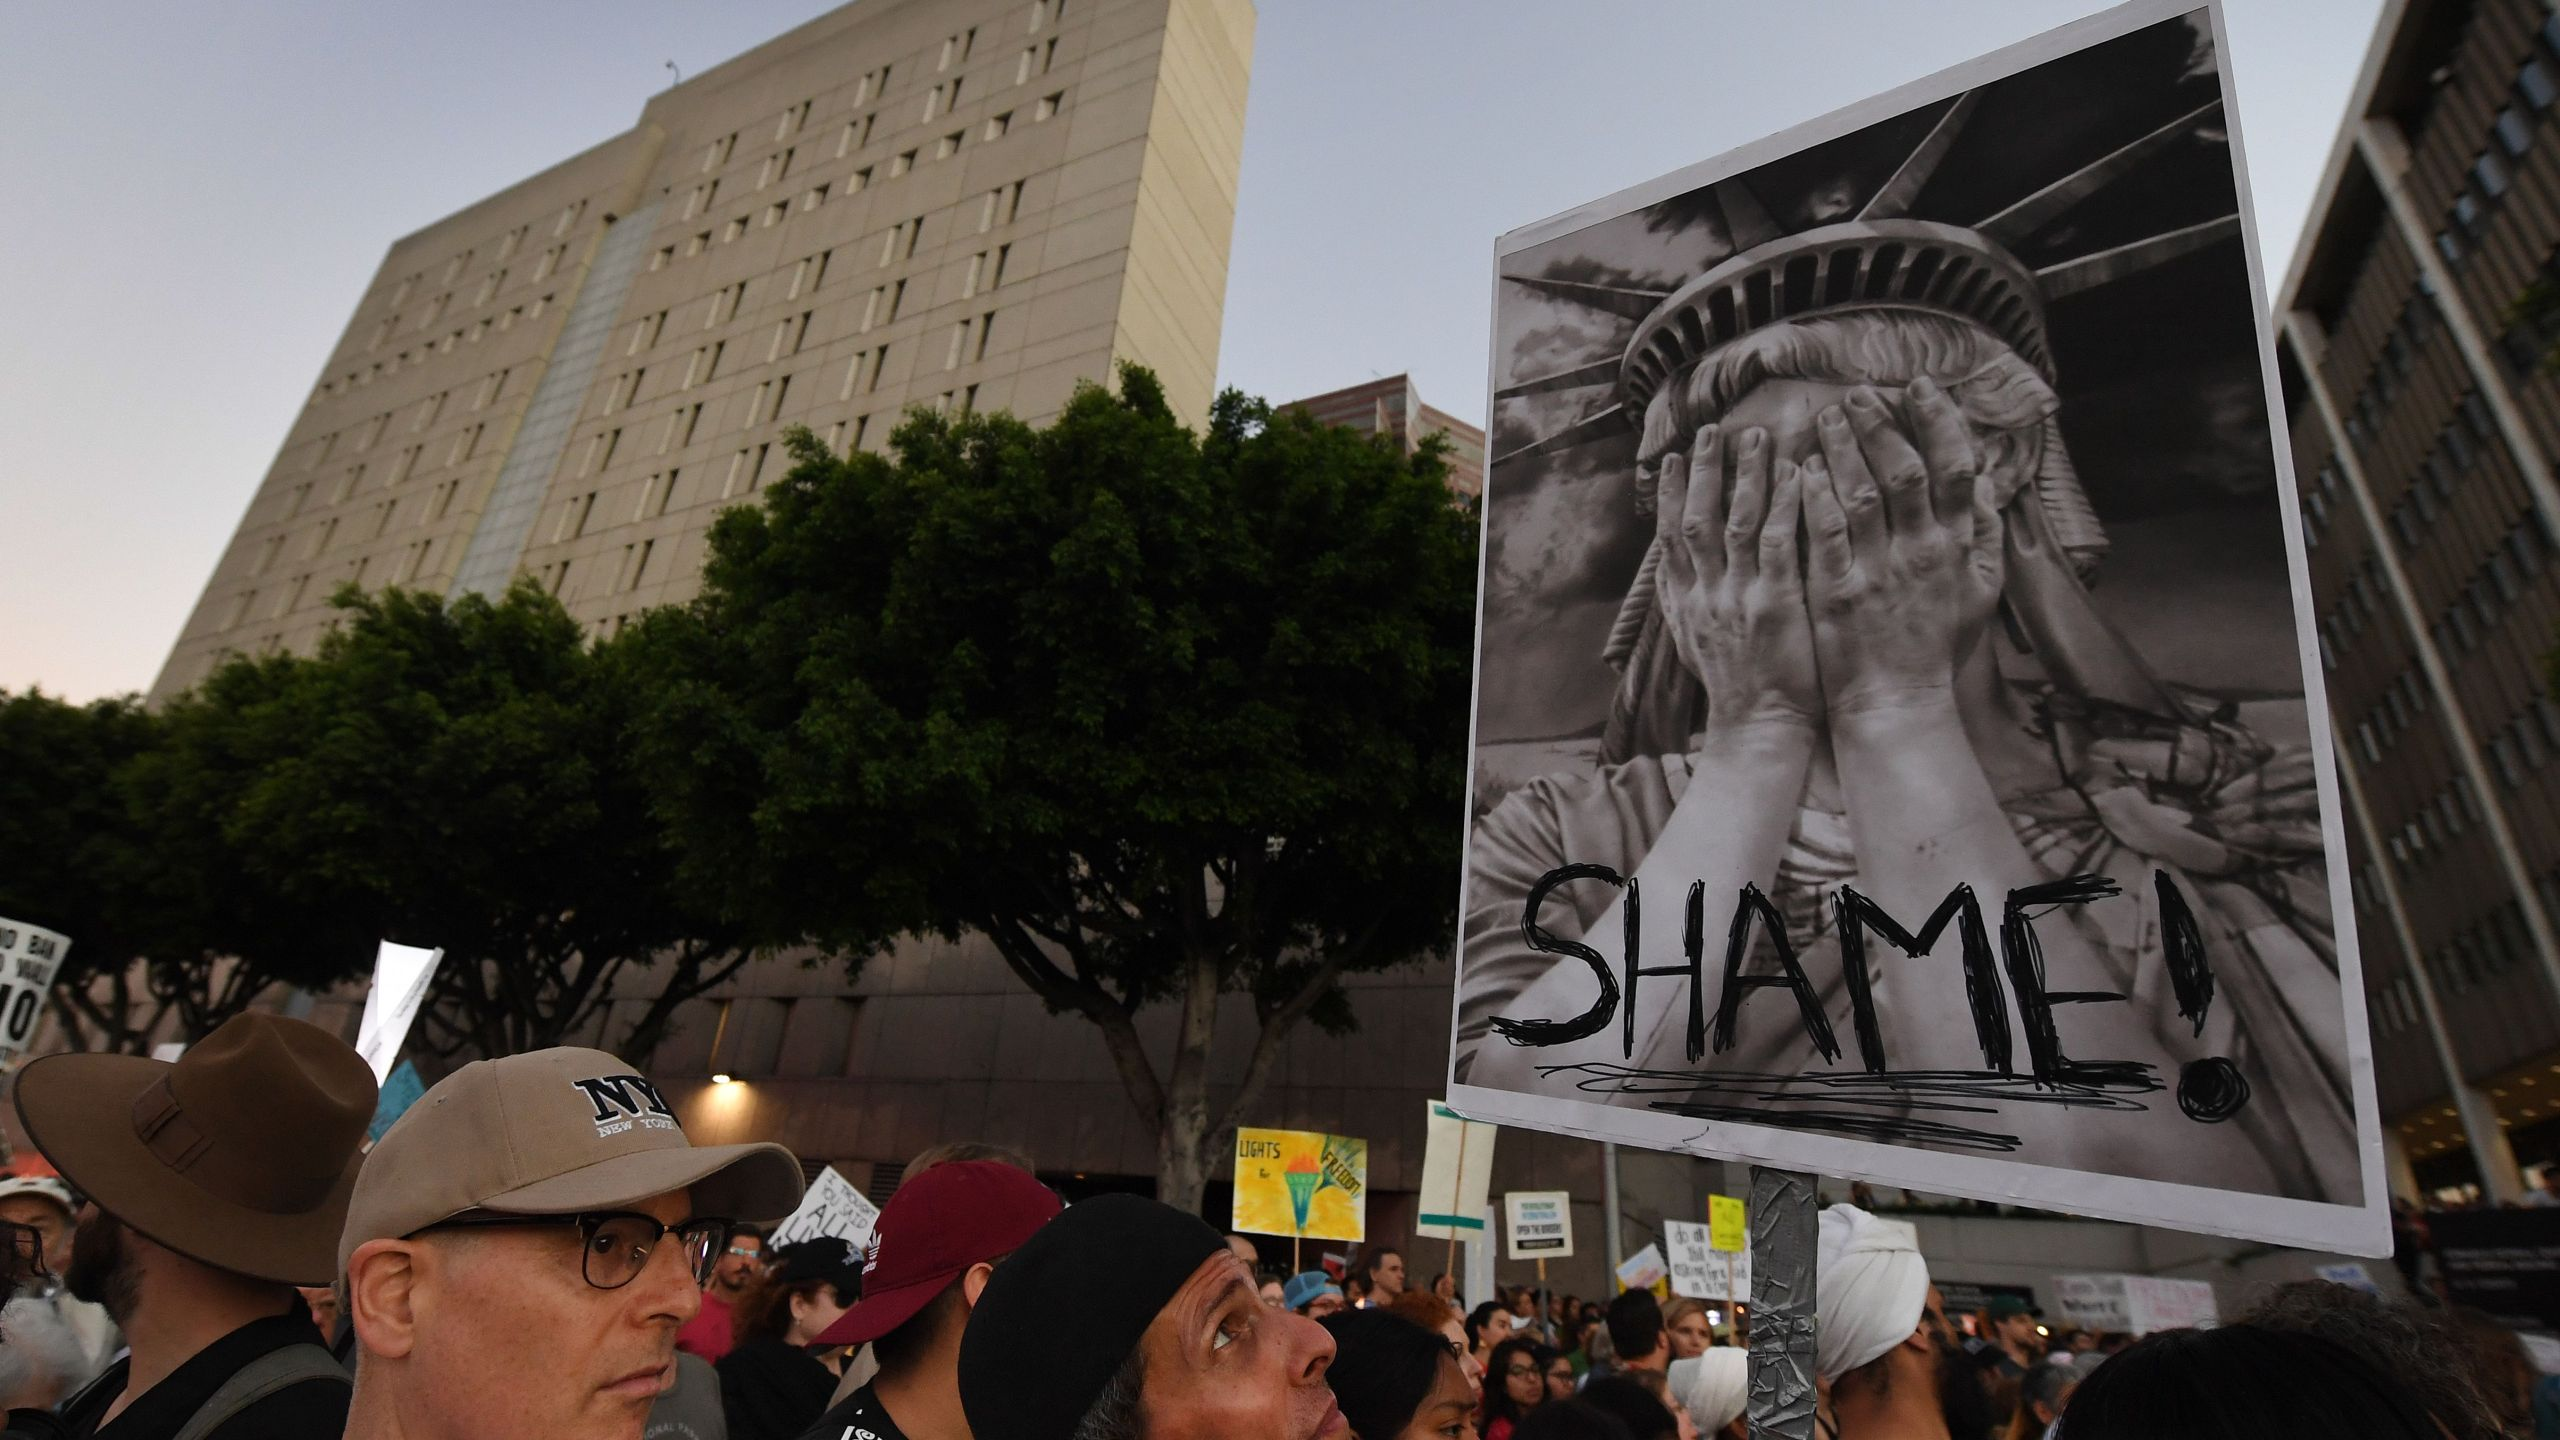 People protest against the upcoming ICE raids and detentions of refugee asylum seekers at a vigil outside the main ICE detention center in downtown Los Angeles on July 12, 2019. (Credit: MARK RALSTON/AFP/Getty Images)